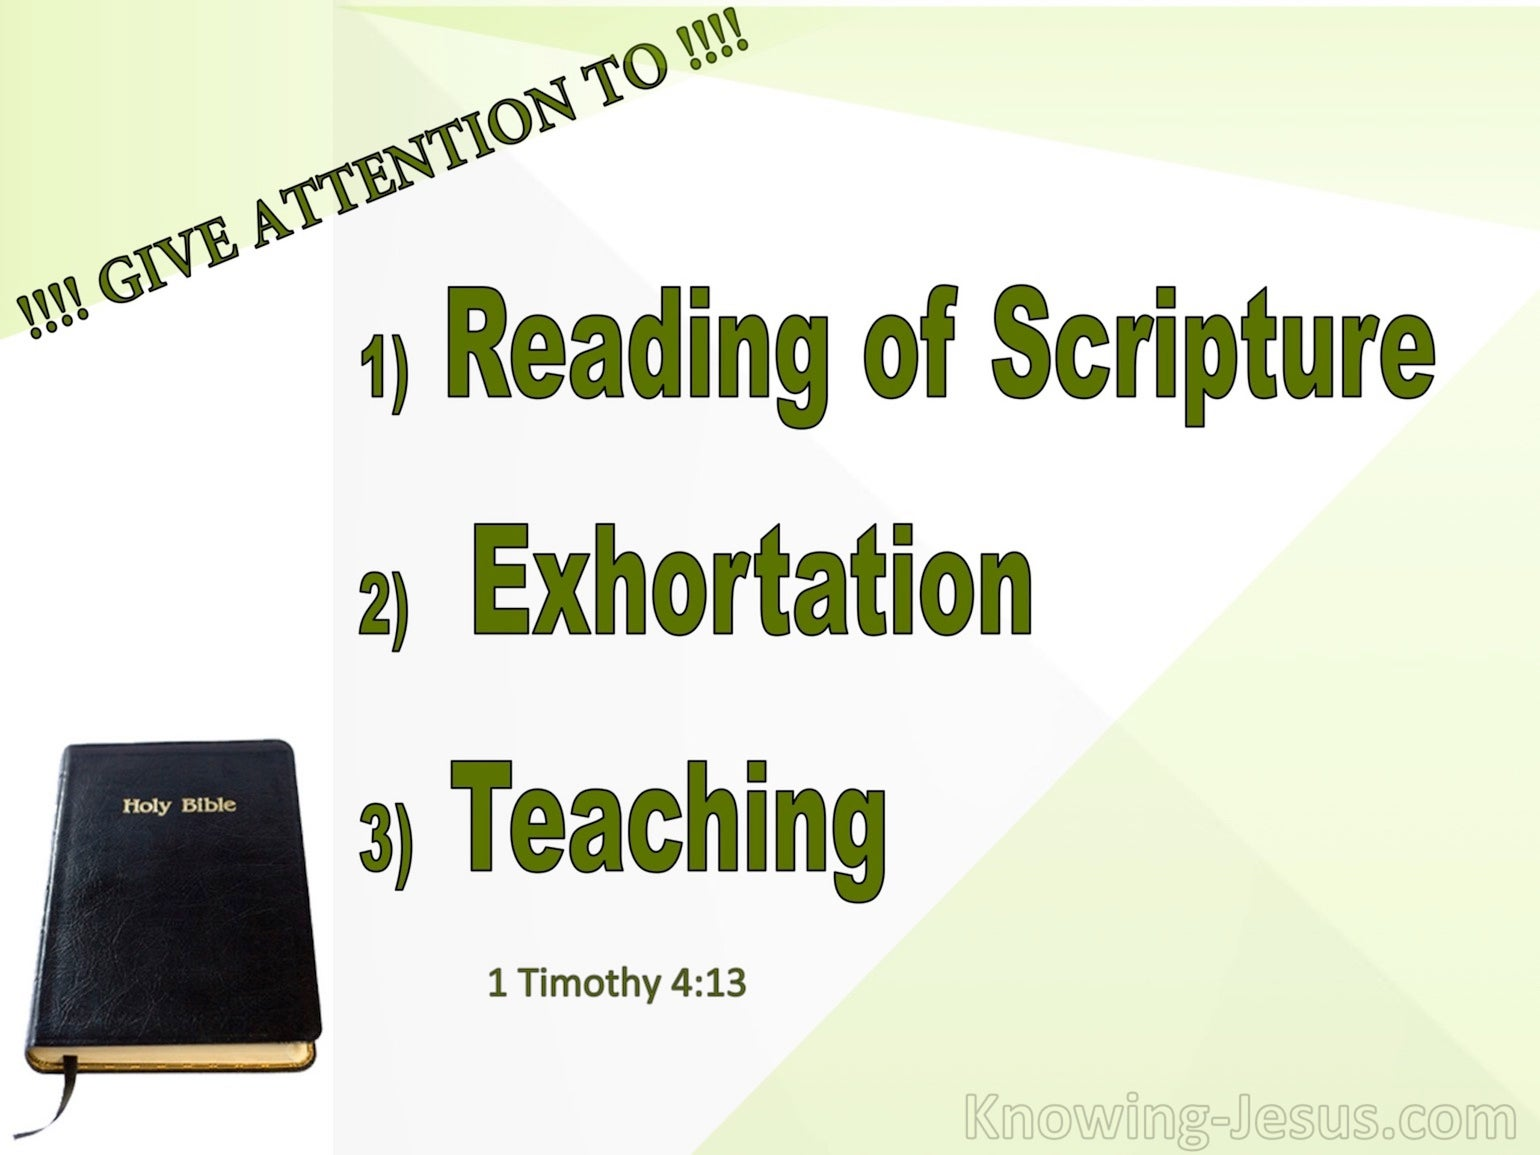 What Does 1 Timothy 4:13 Mean?